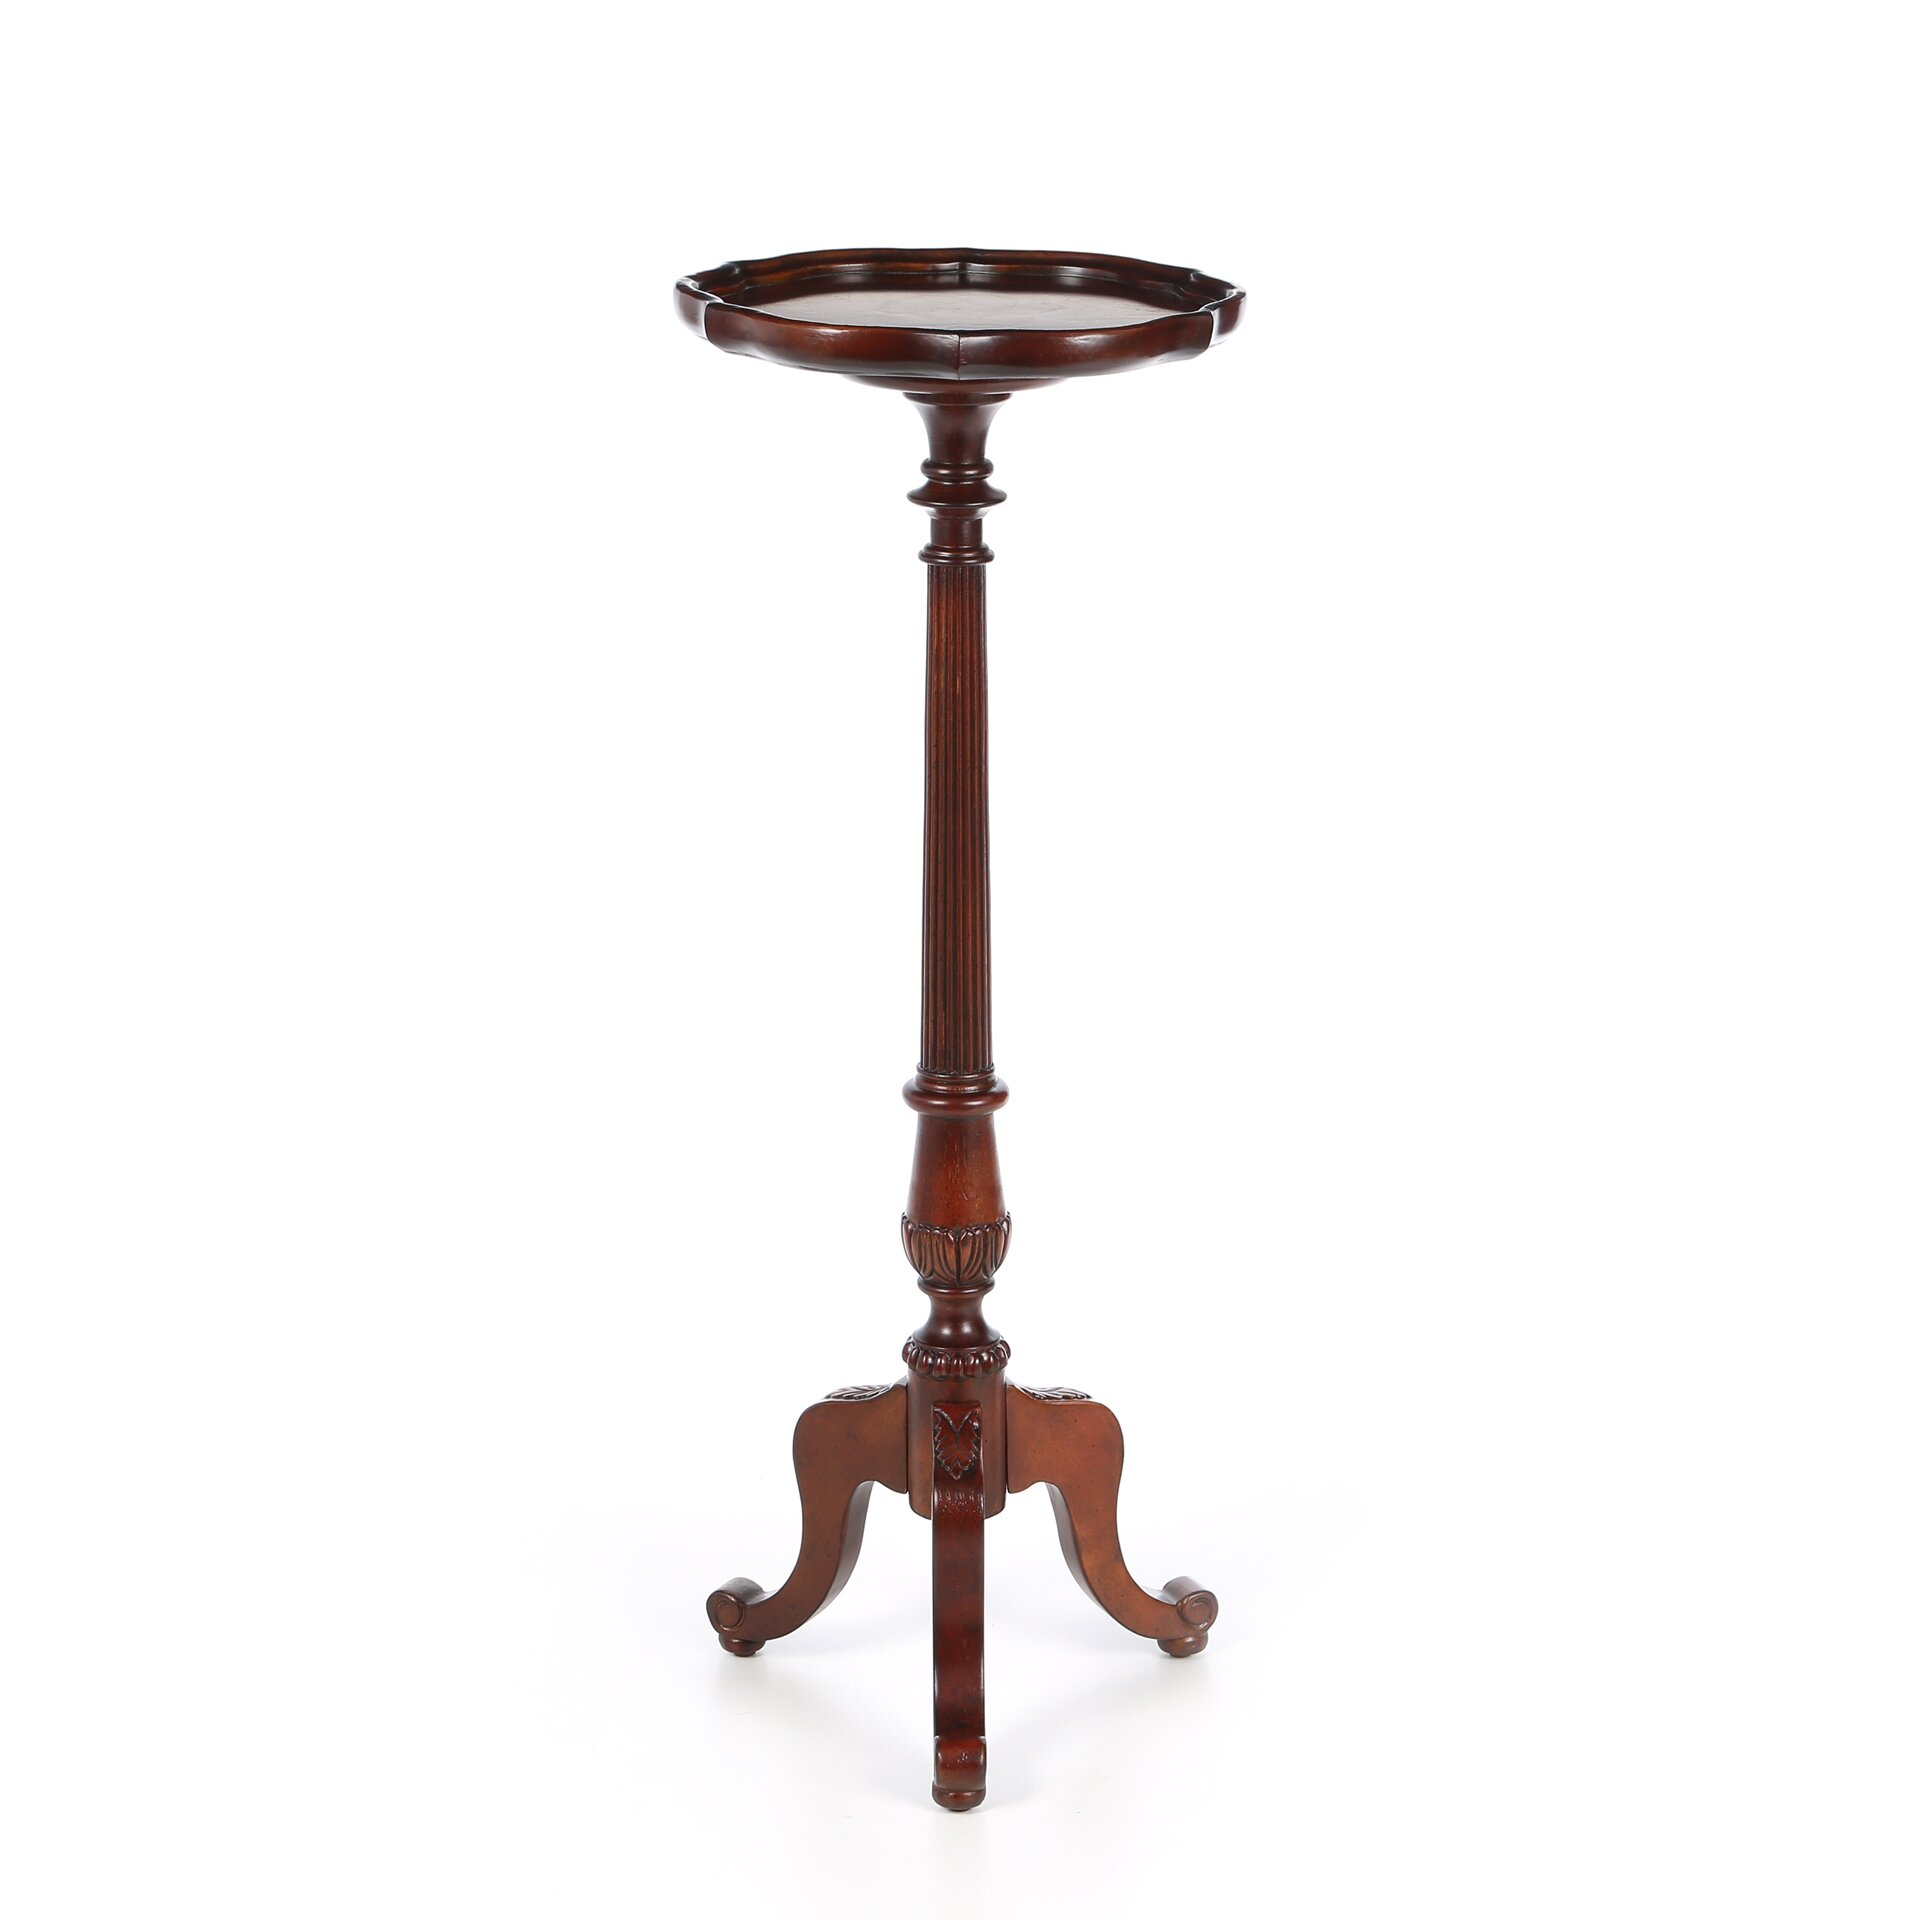 Low Dining Room Tables Darby Home Co Elkville Pedestal Plant Stand Amp Reviews